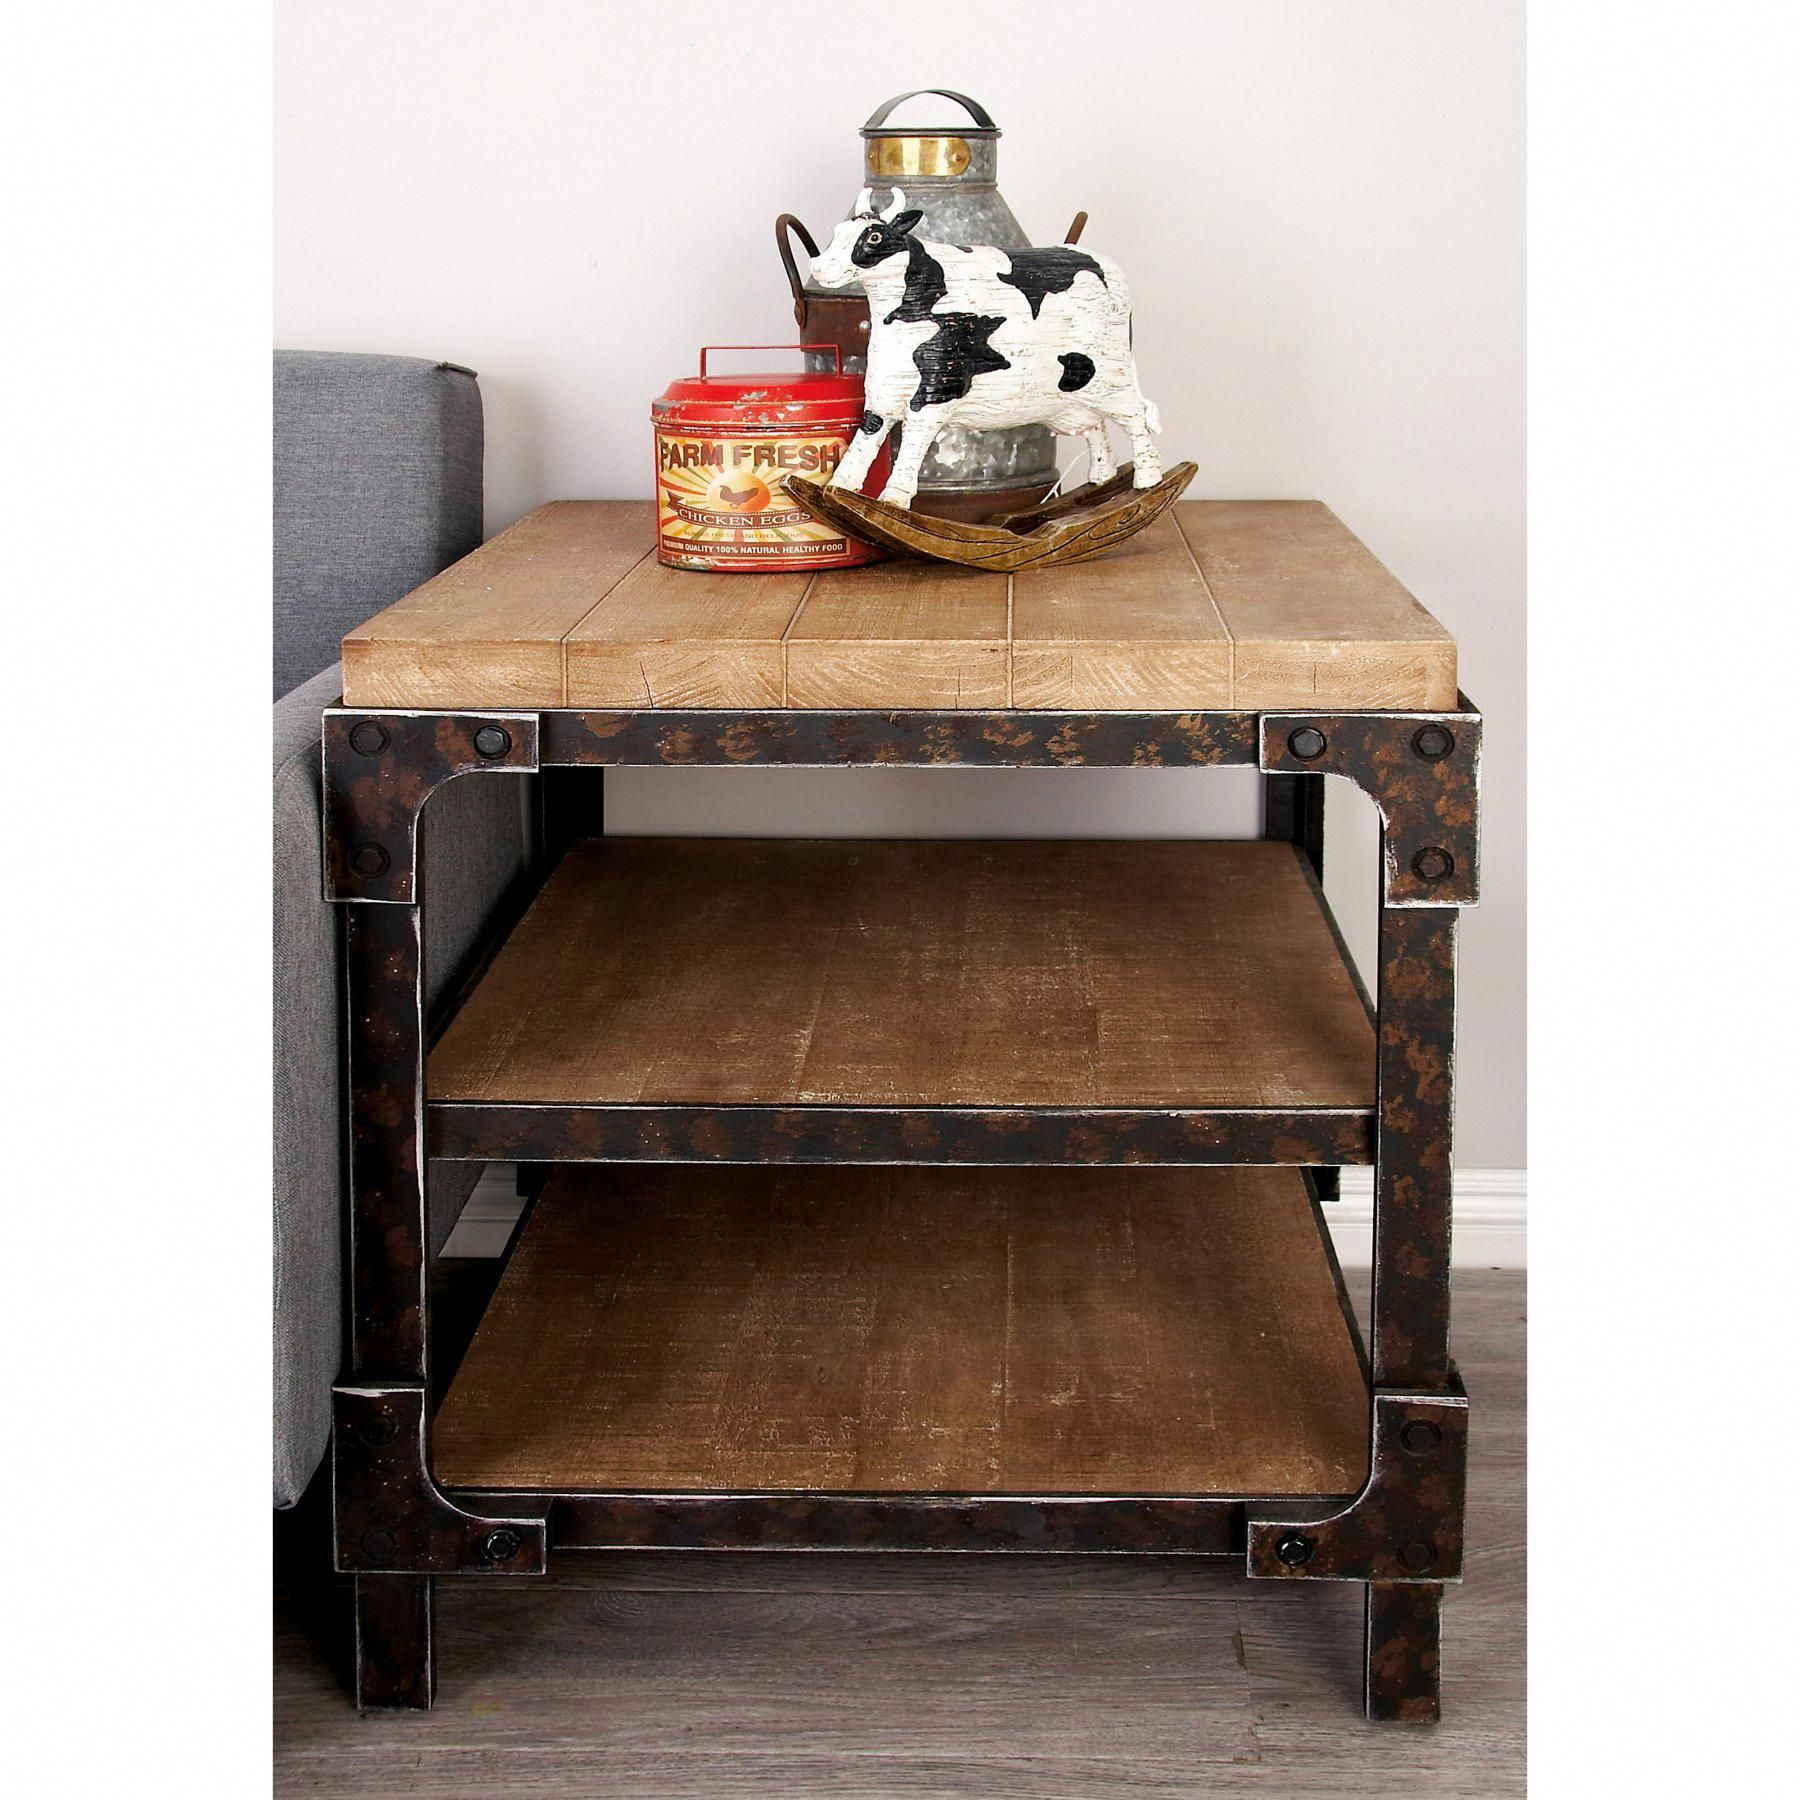 Decmode industrial 3 tiered side table homedecorideas